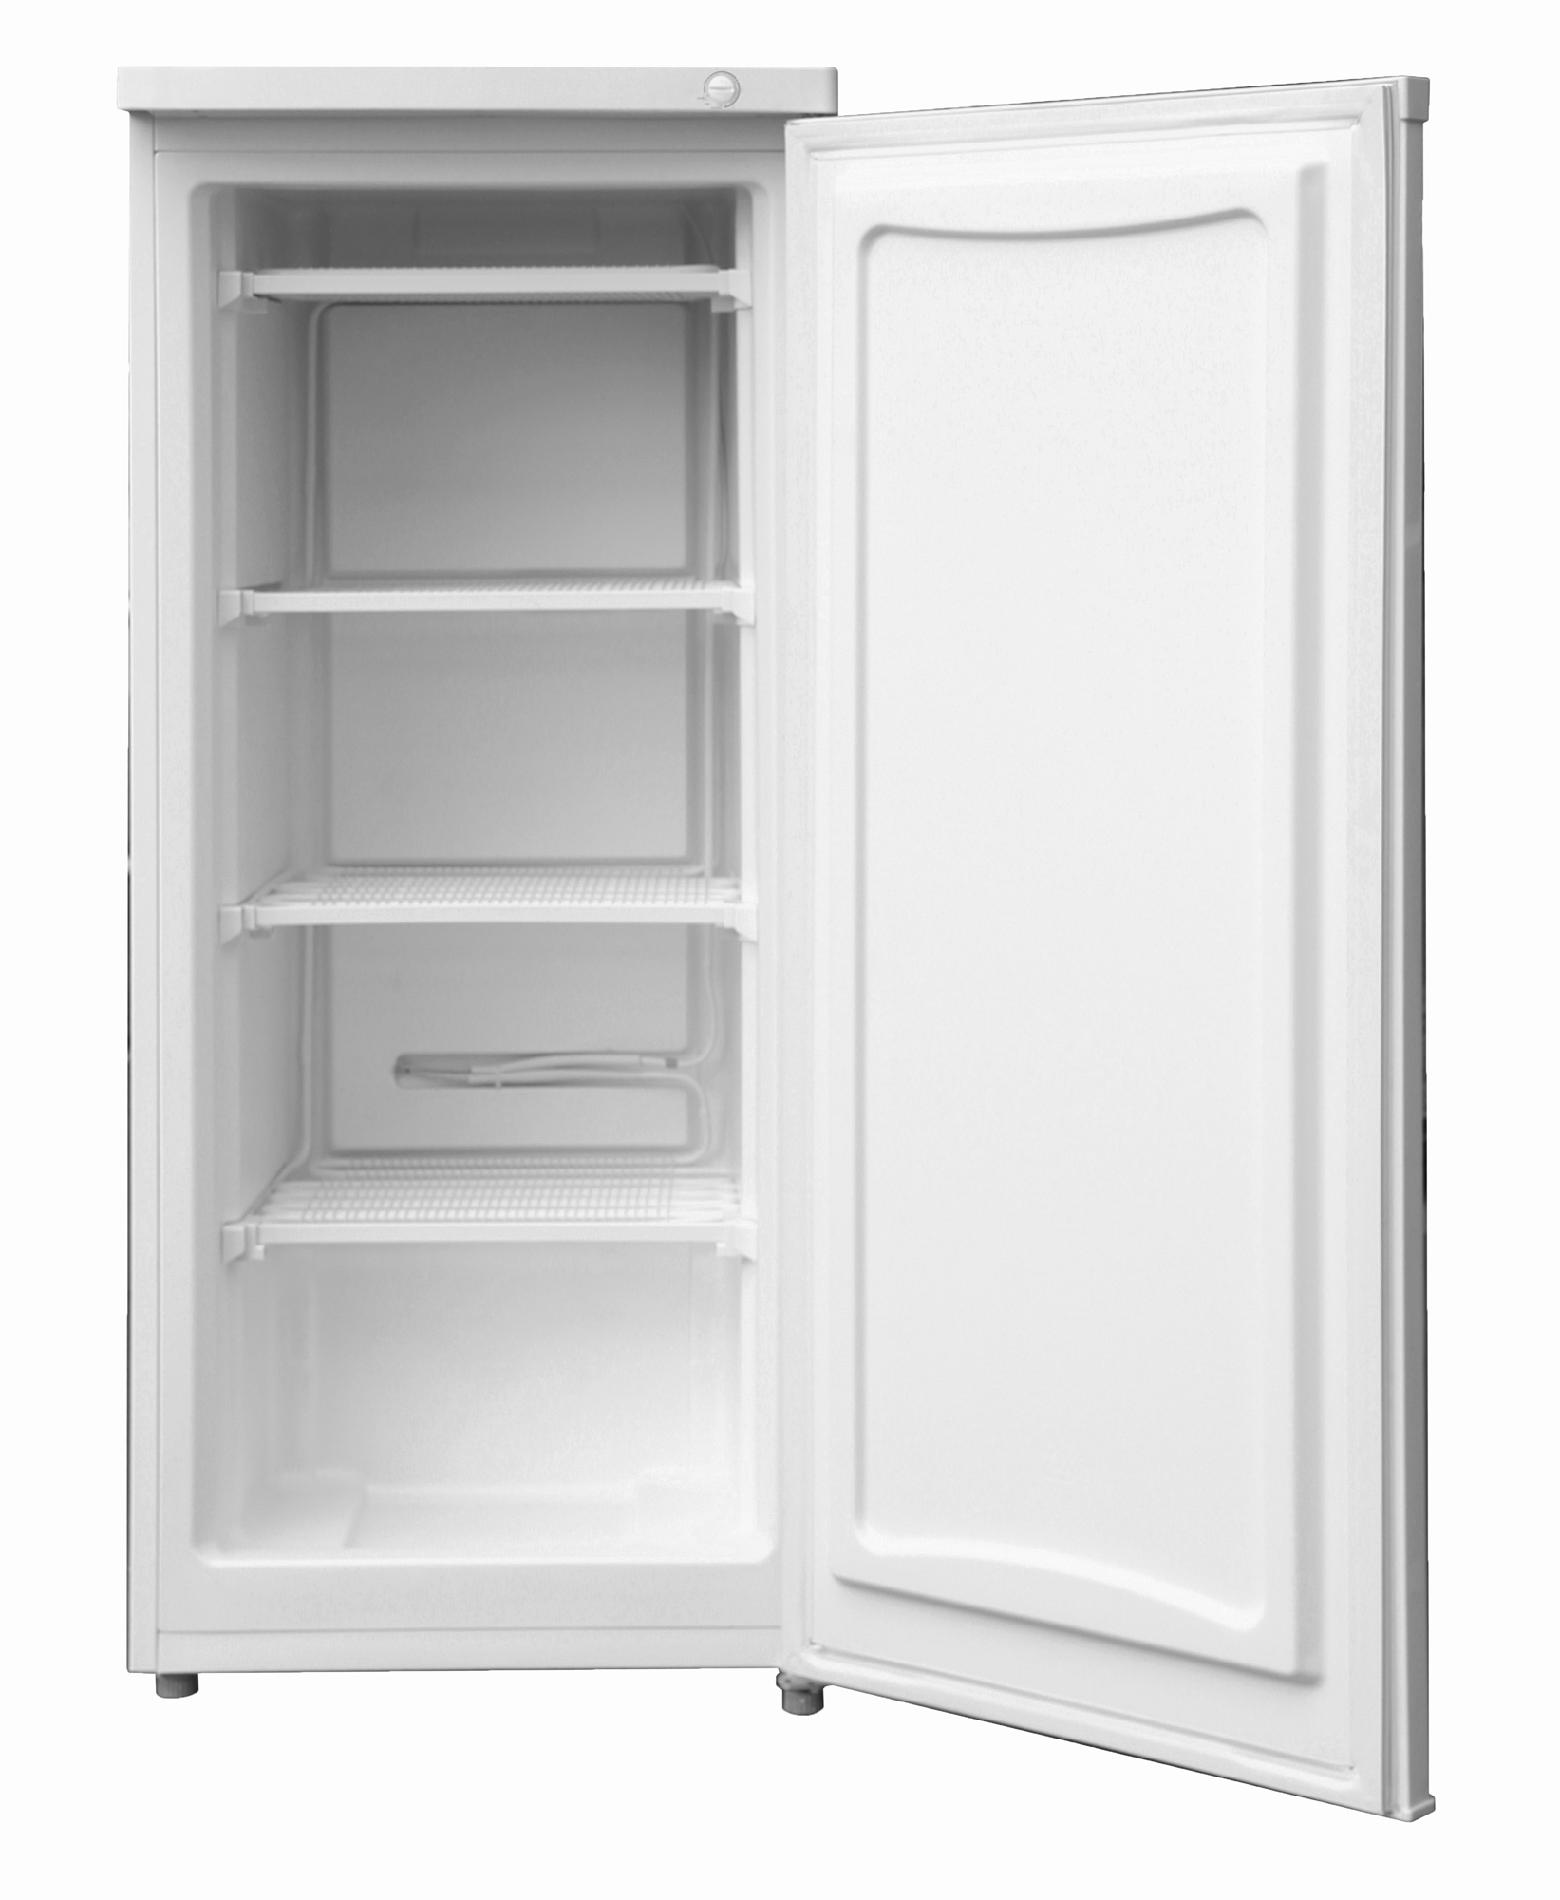 Kenmore 4.9 cu. ft. Upright Freezer - White